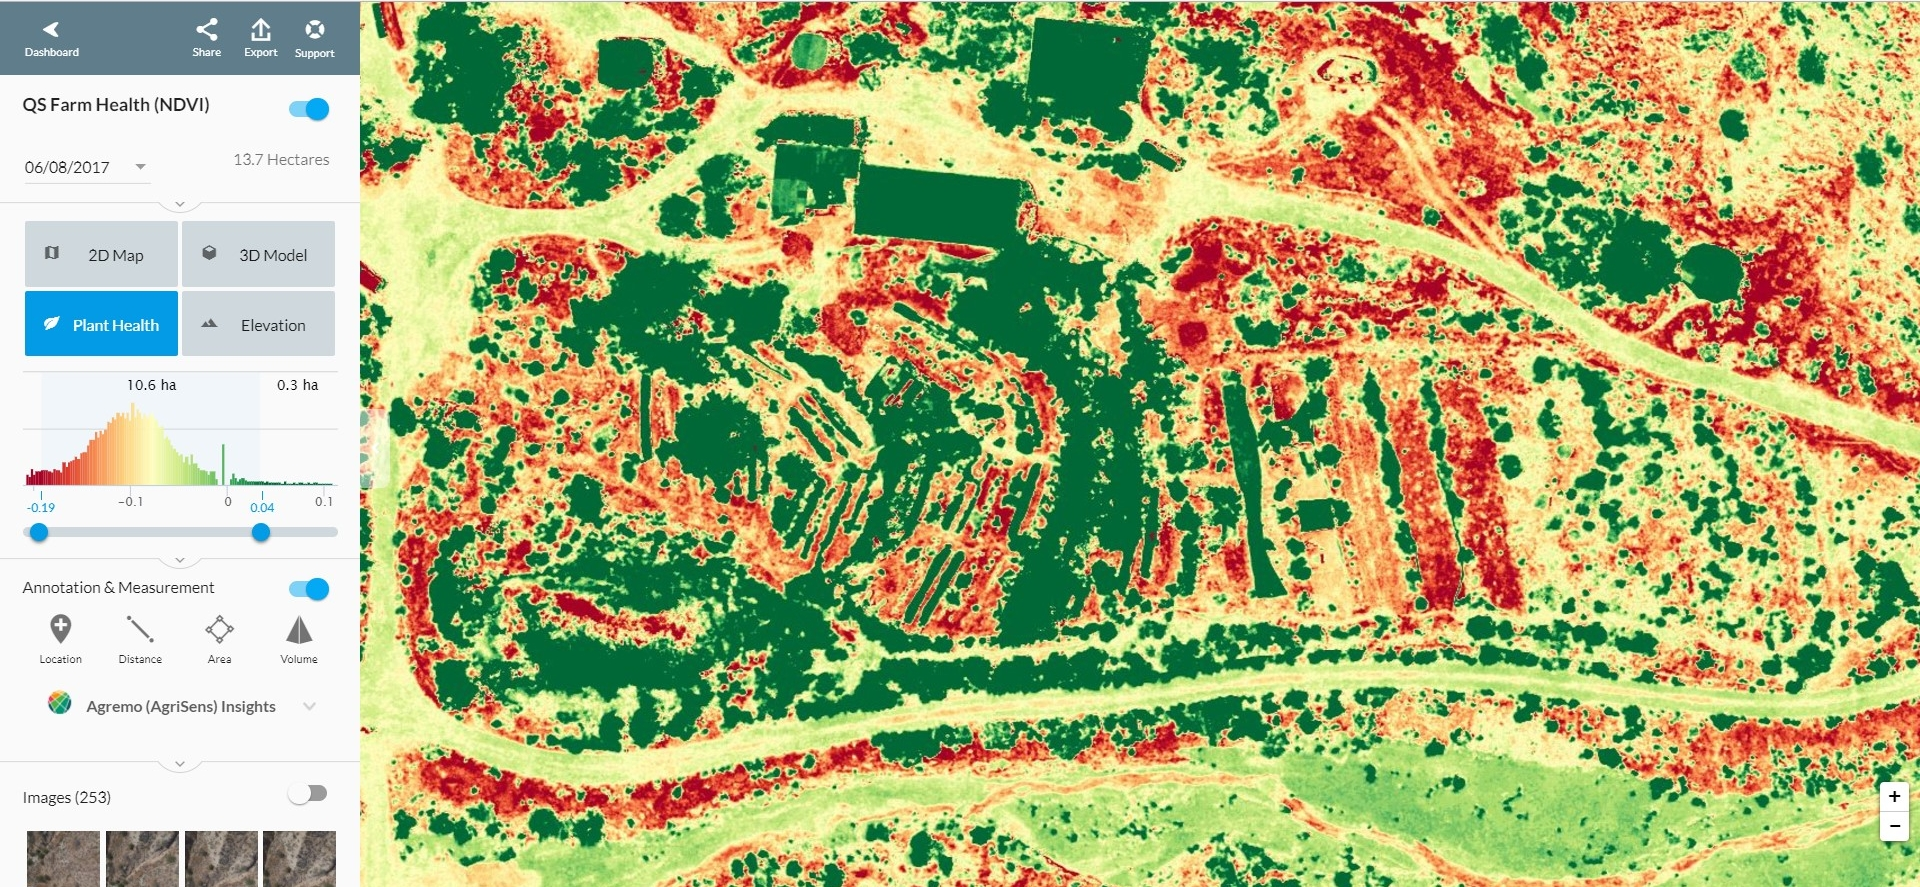 precision agriculture  - NDVI Plant Health Index, Plant Counting & Field Management